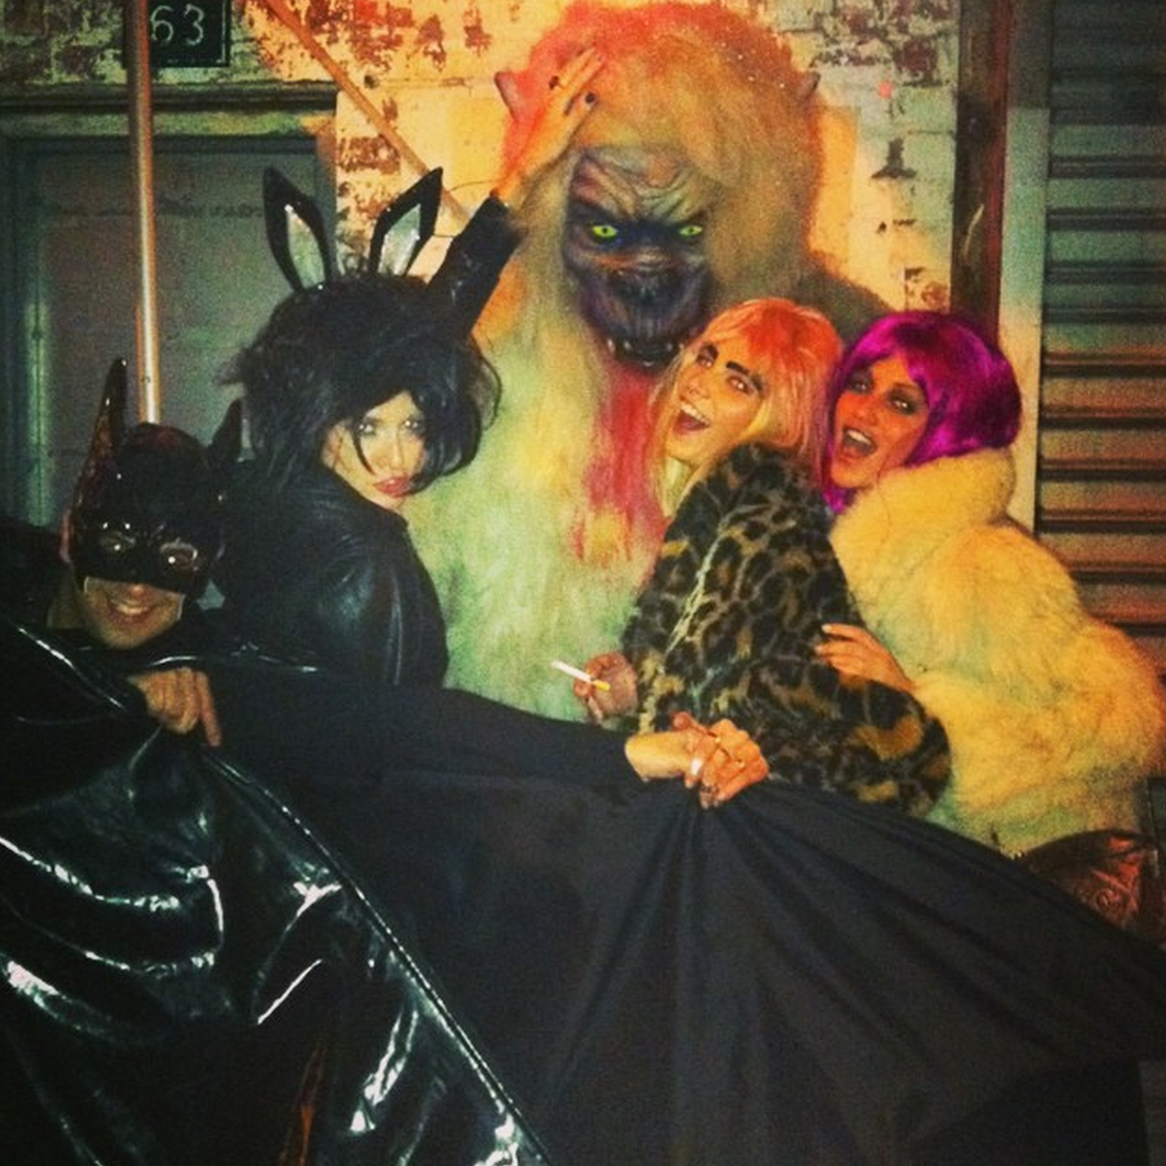 #TBT best helloween ever! NYC-2011 @helder_marques @adricaye @alineweber_real #queriaestarla #chatiada